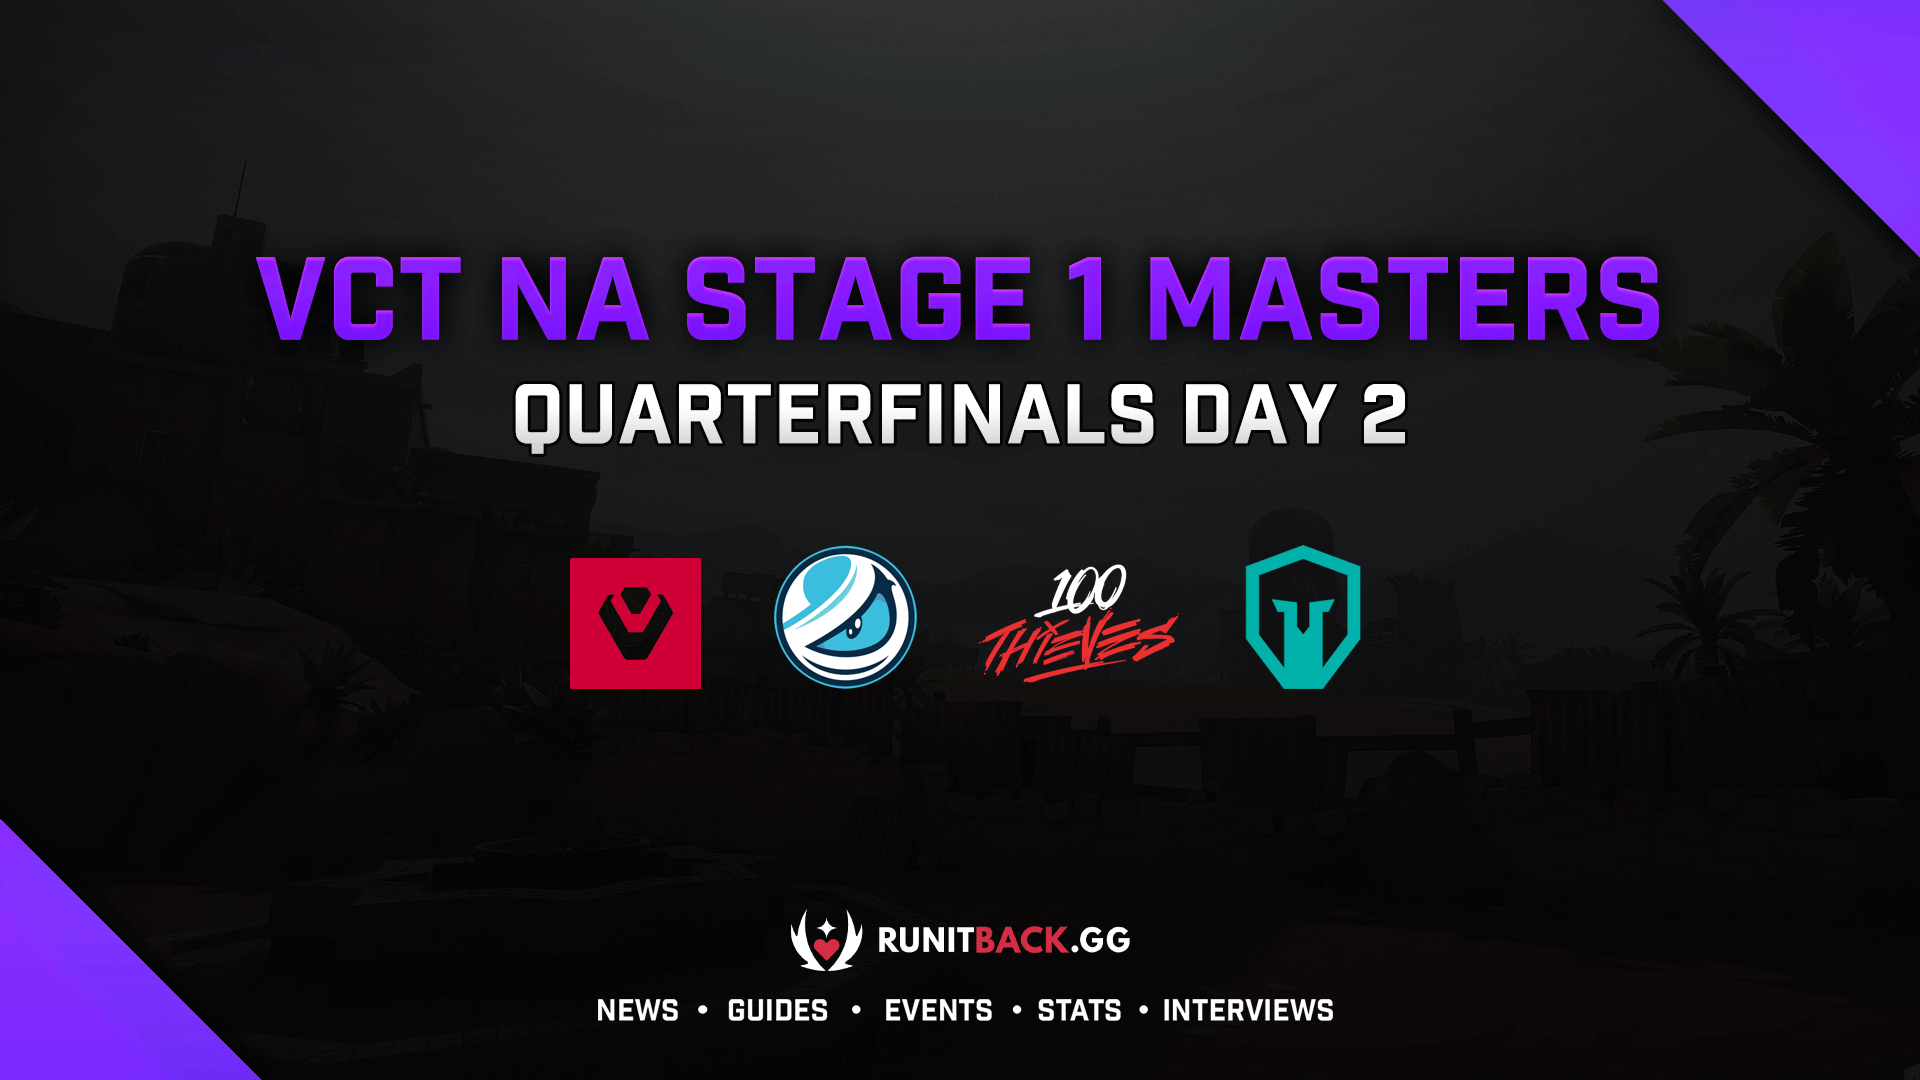 VCT NA Stage 1 Masters: Quarterfinals Day 2